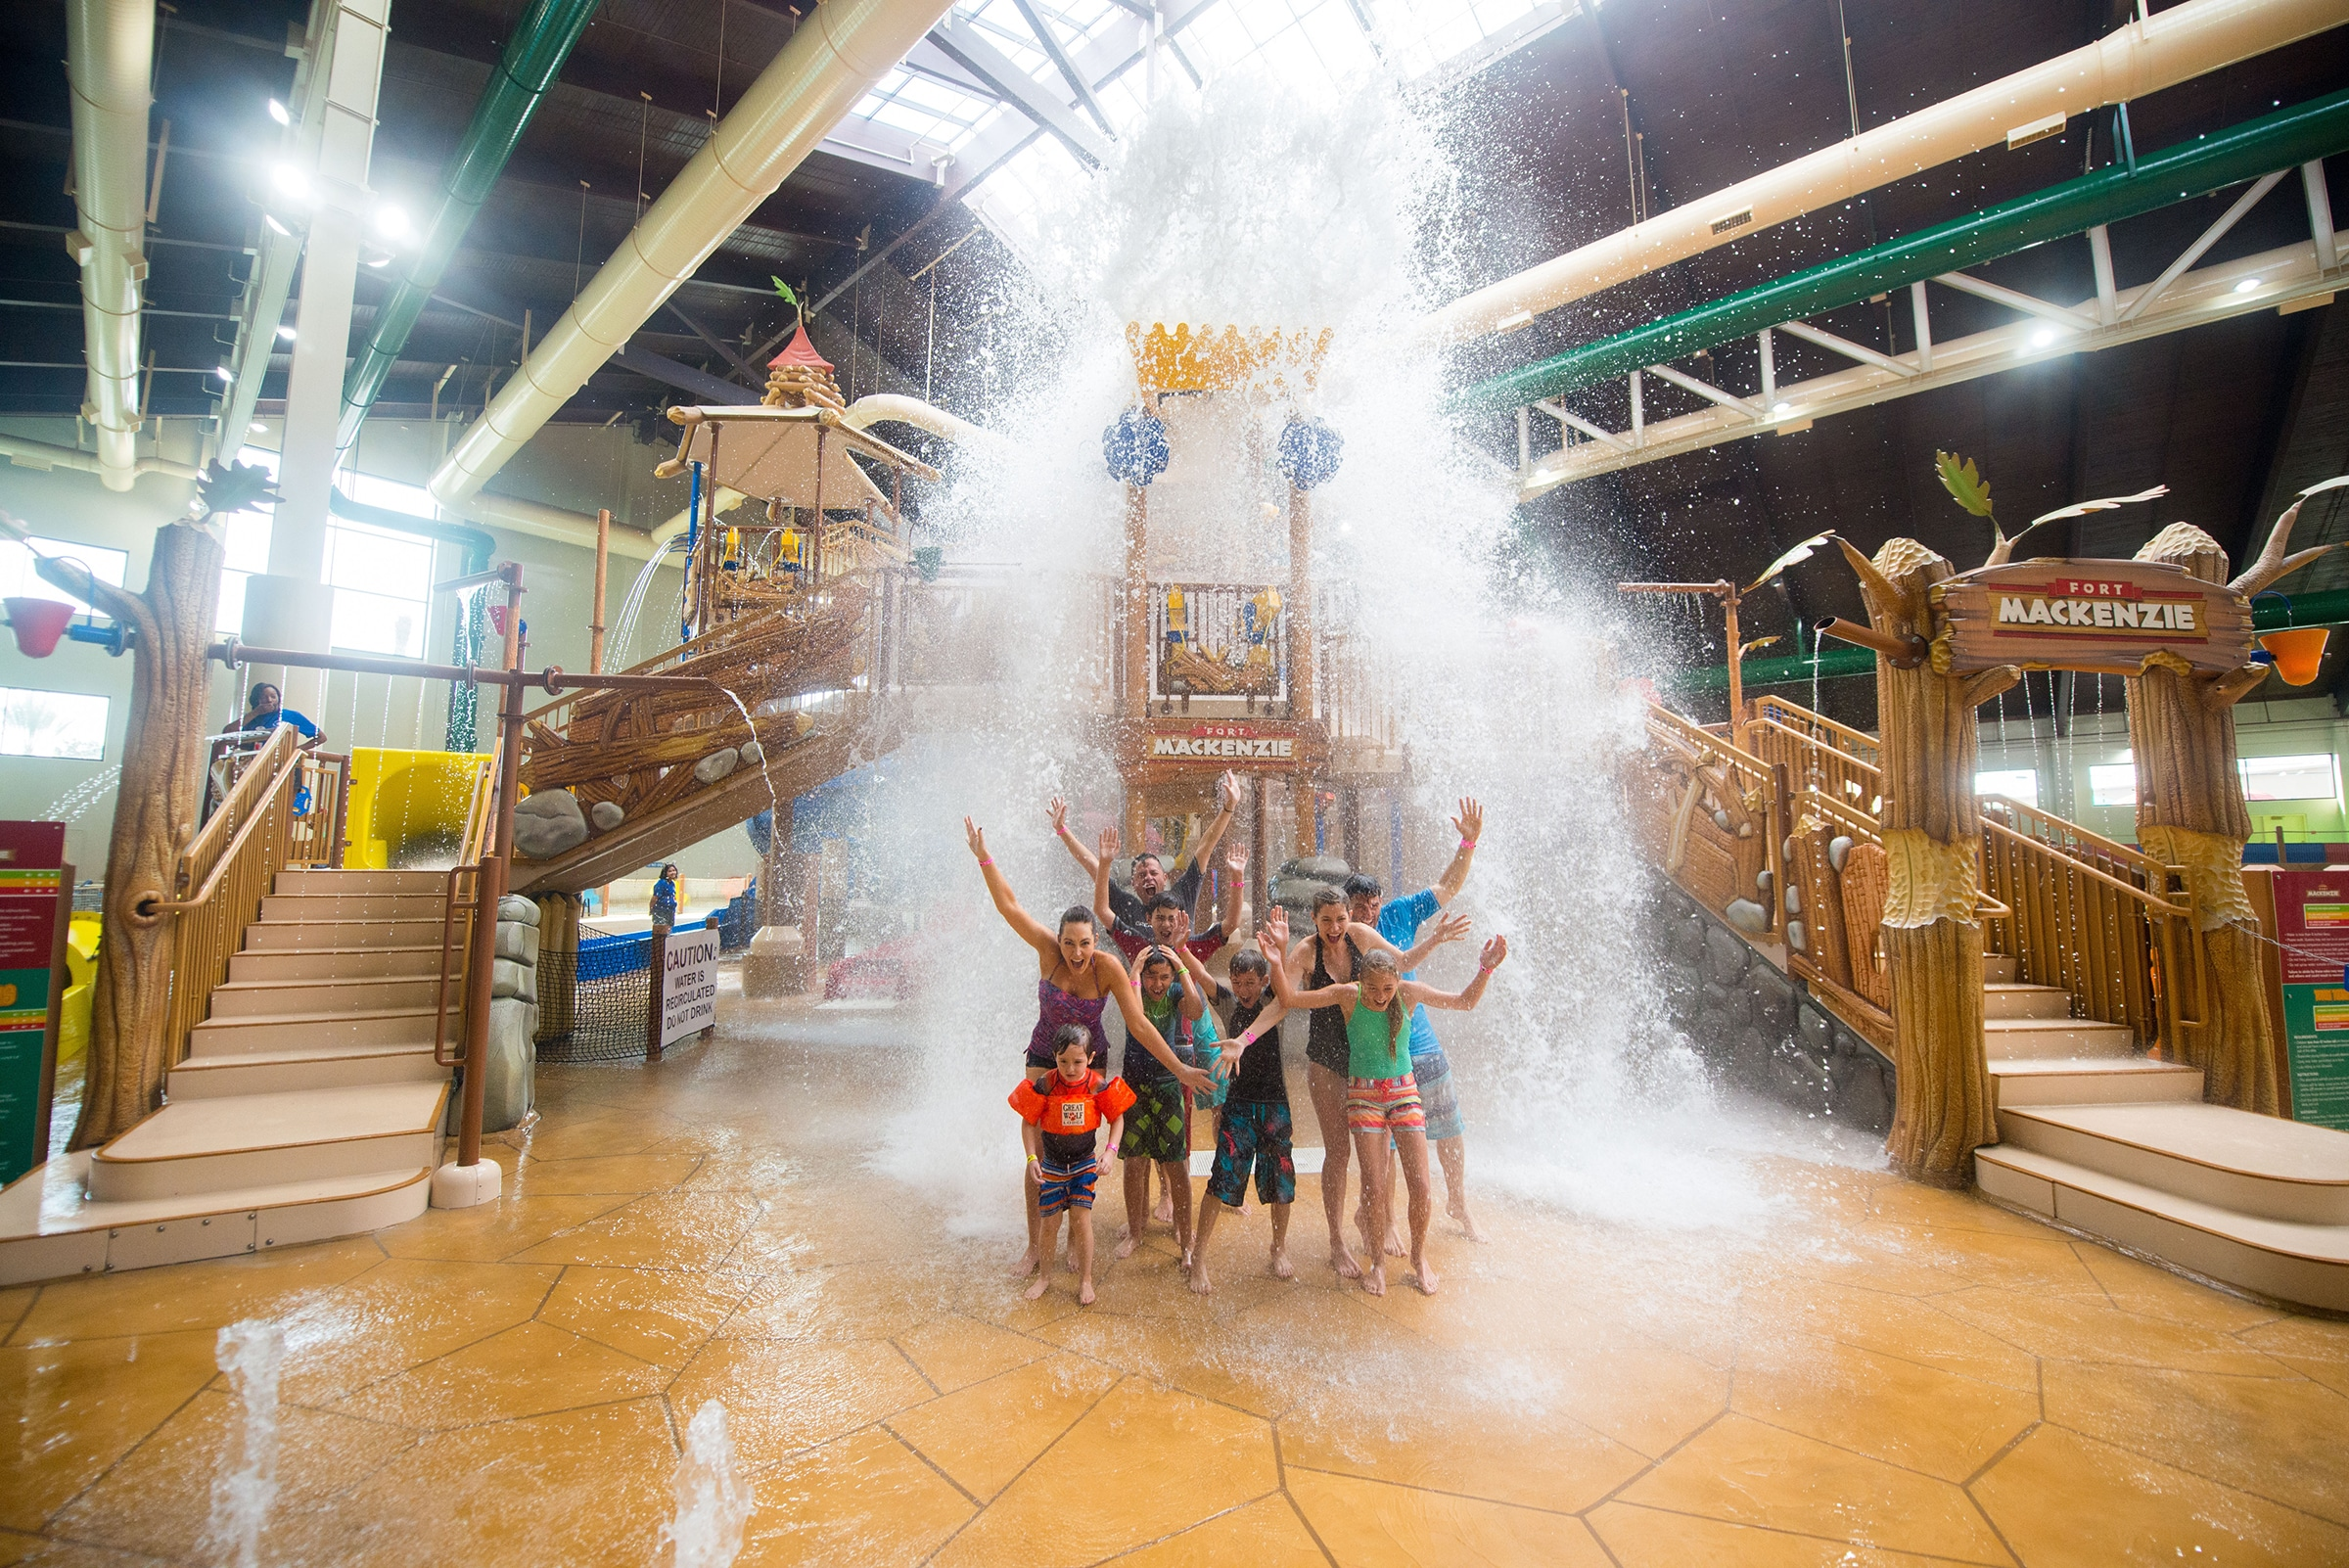 Kids pose happy in front of a Fort Mackenzie water play area inside of Great Wolf Lodge